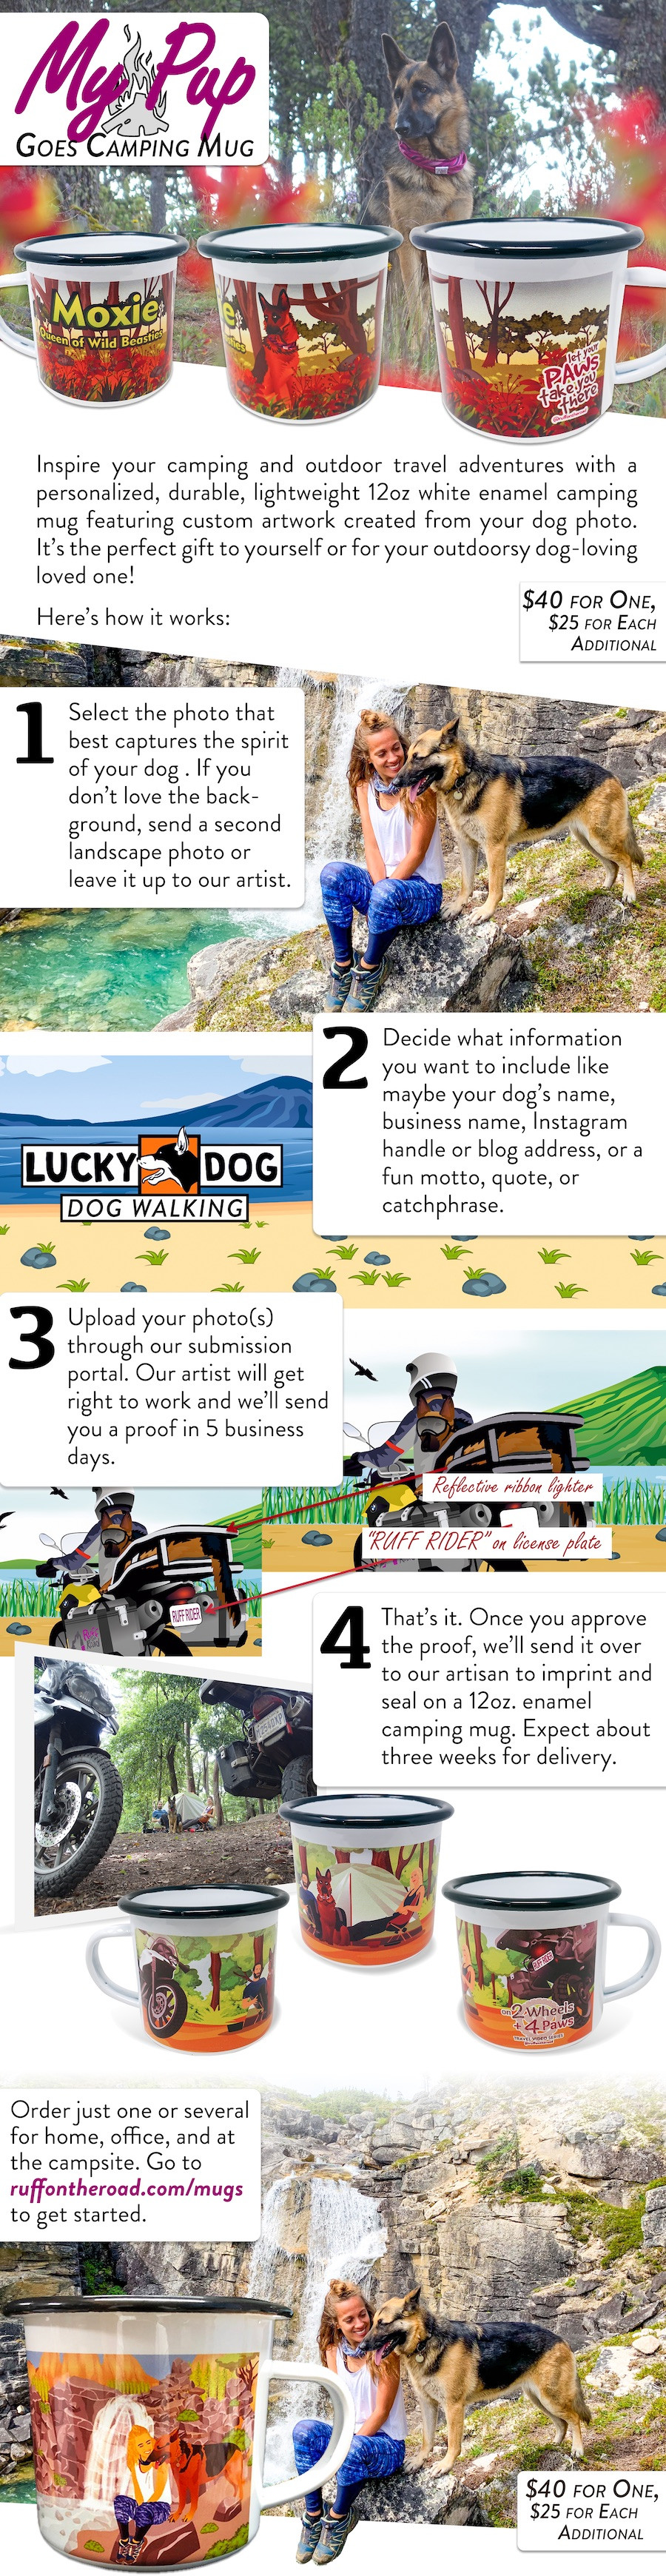 Colorful, illustrated, graphical description of how we create a personalized enamel camping mug from your dog photo